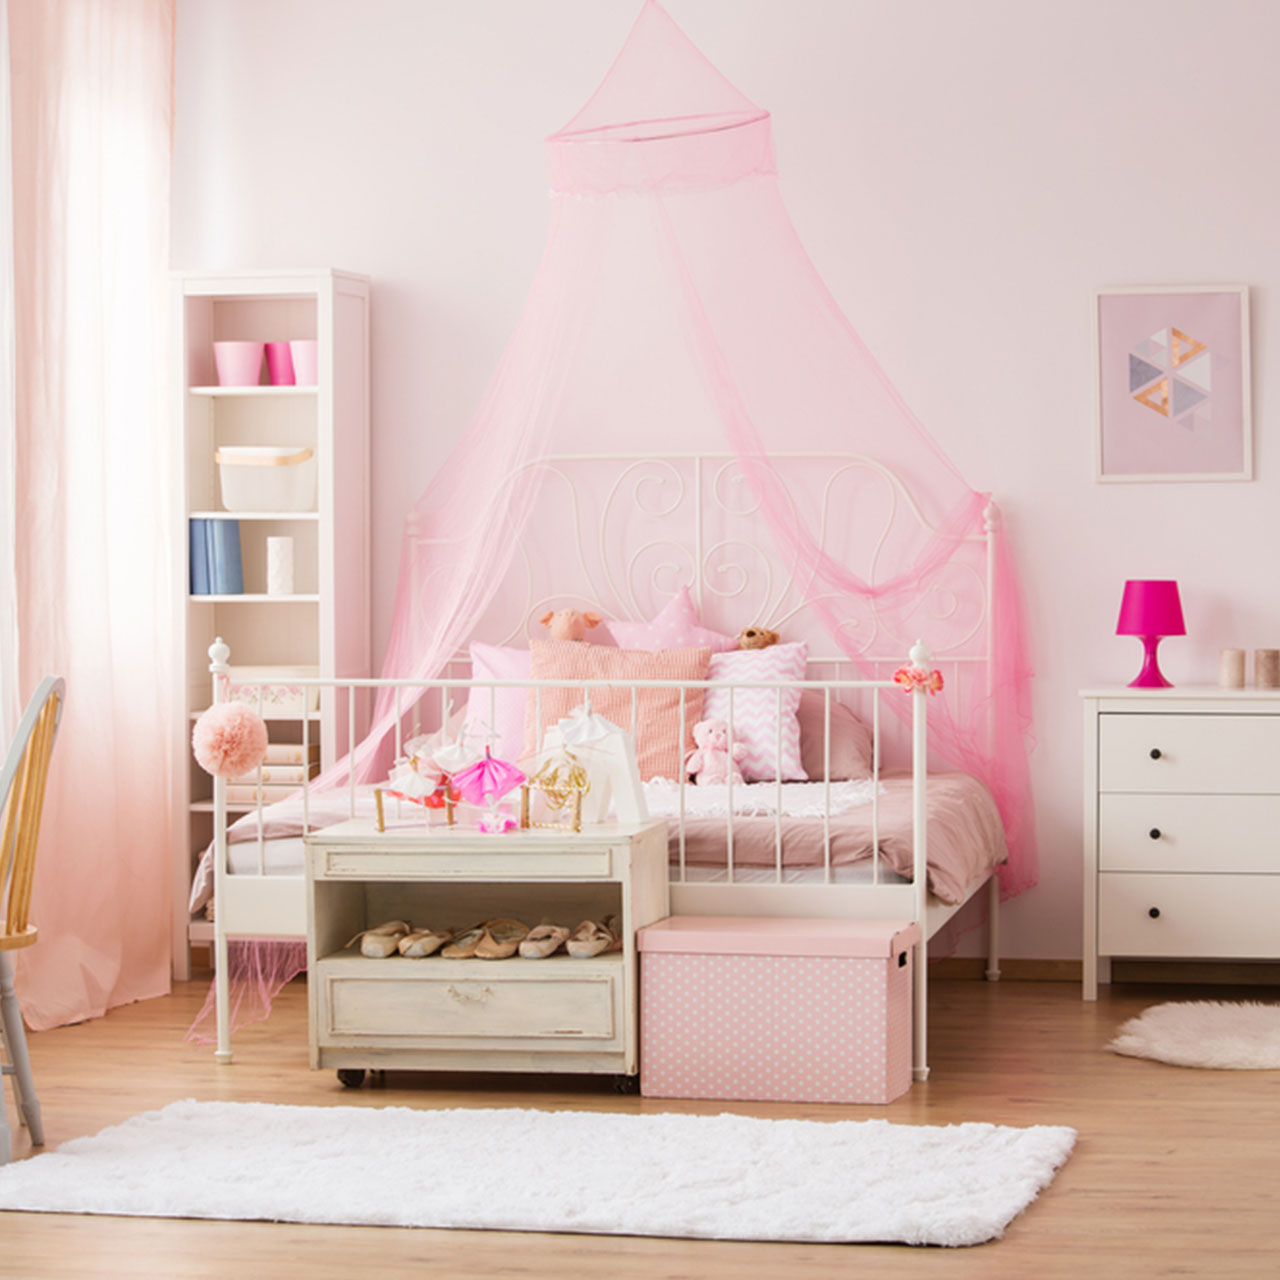 Children bedroom design when young are passionate about many things, and they often live and breathe their passion in kids bedroom design